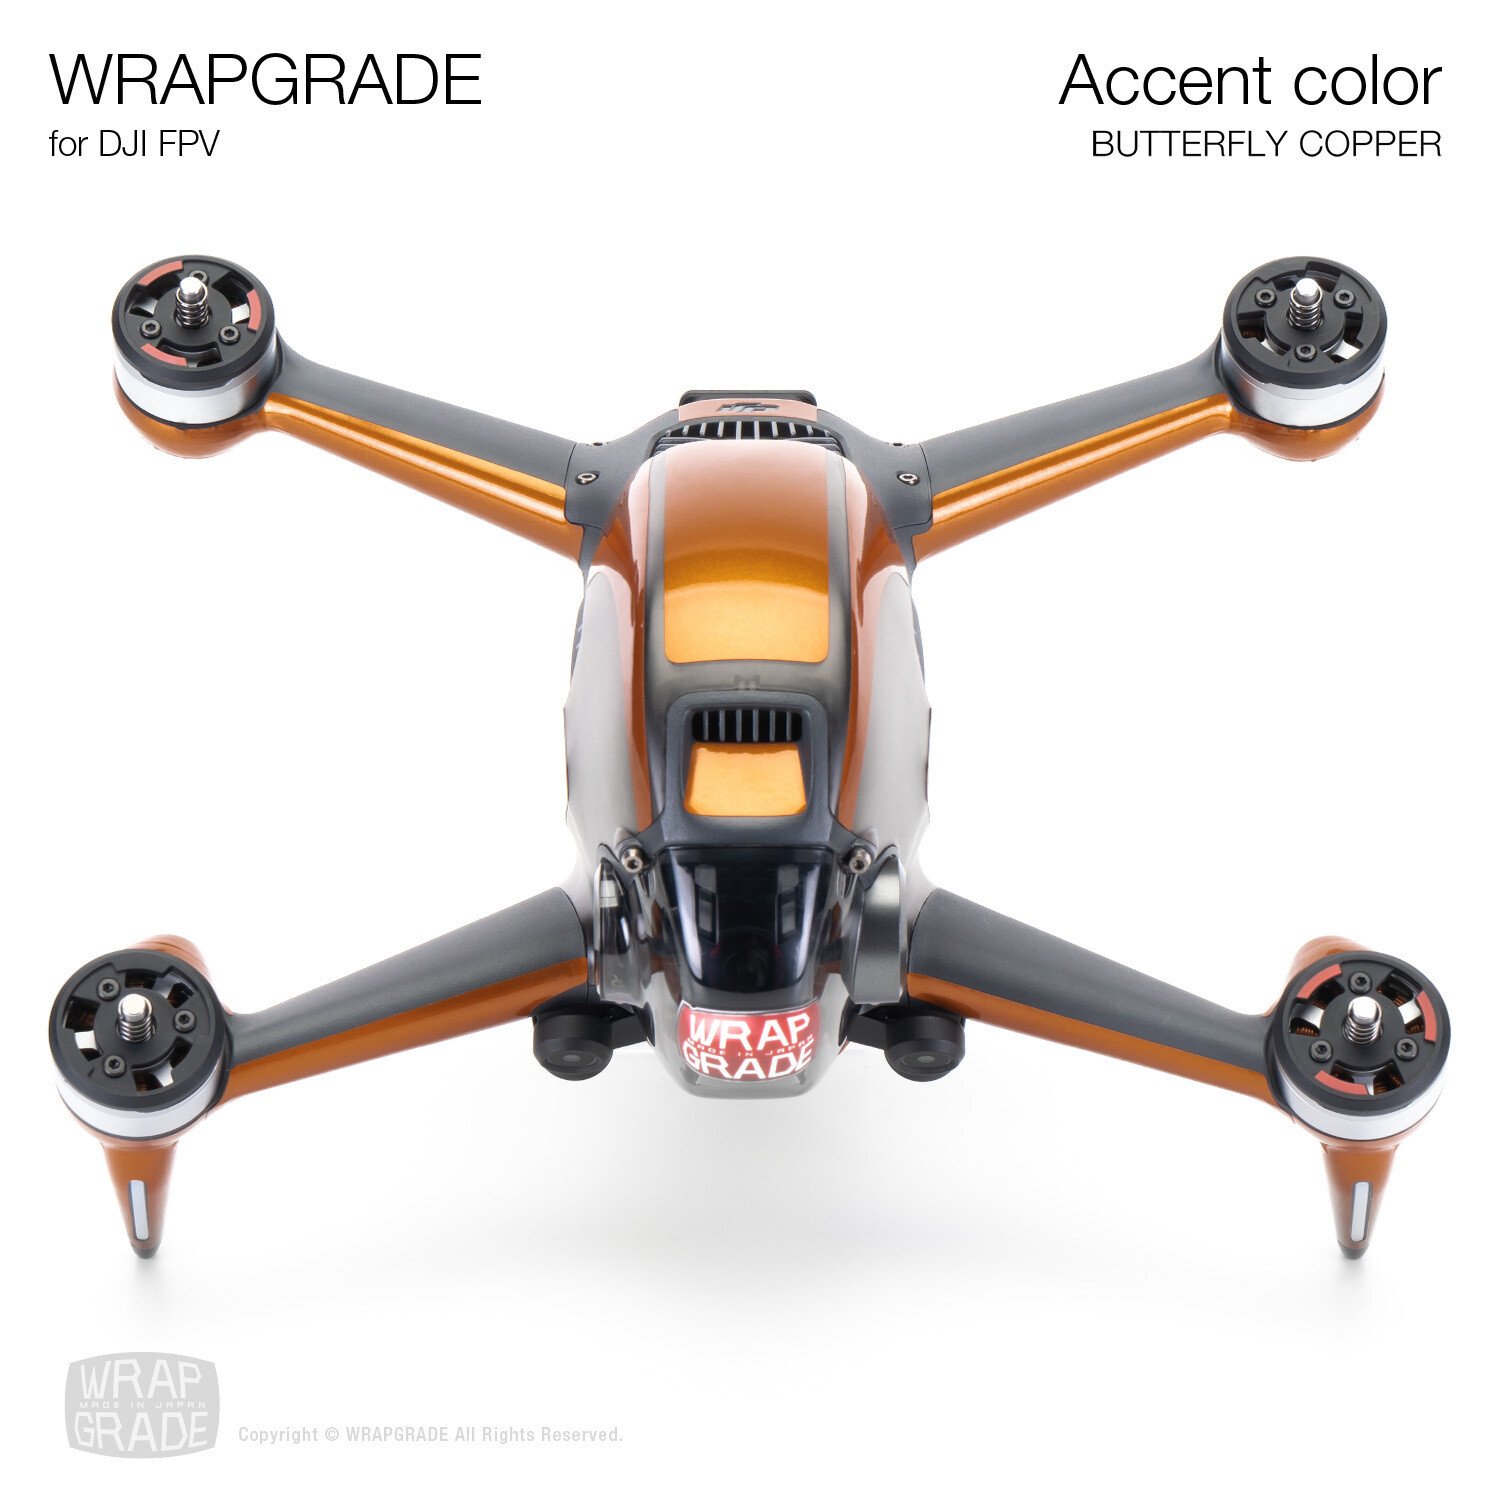 WRAPGRADE for DJI FPV | Accent color (BUTTERFLY COPPER)